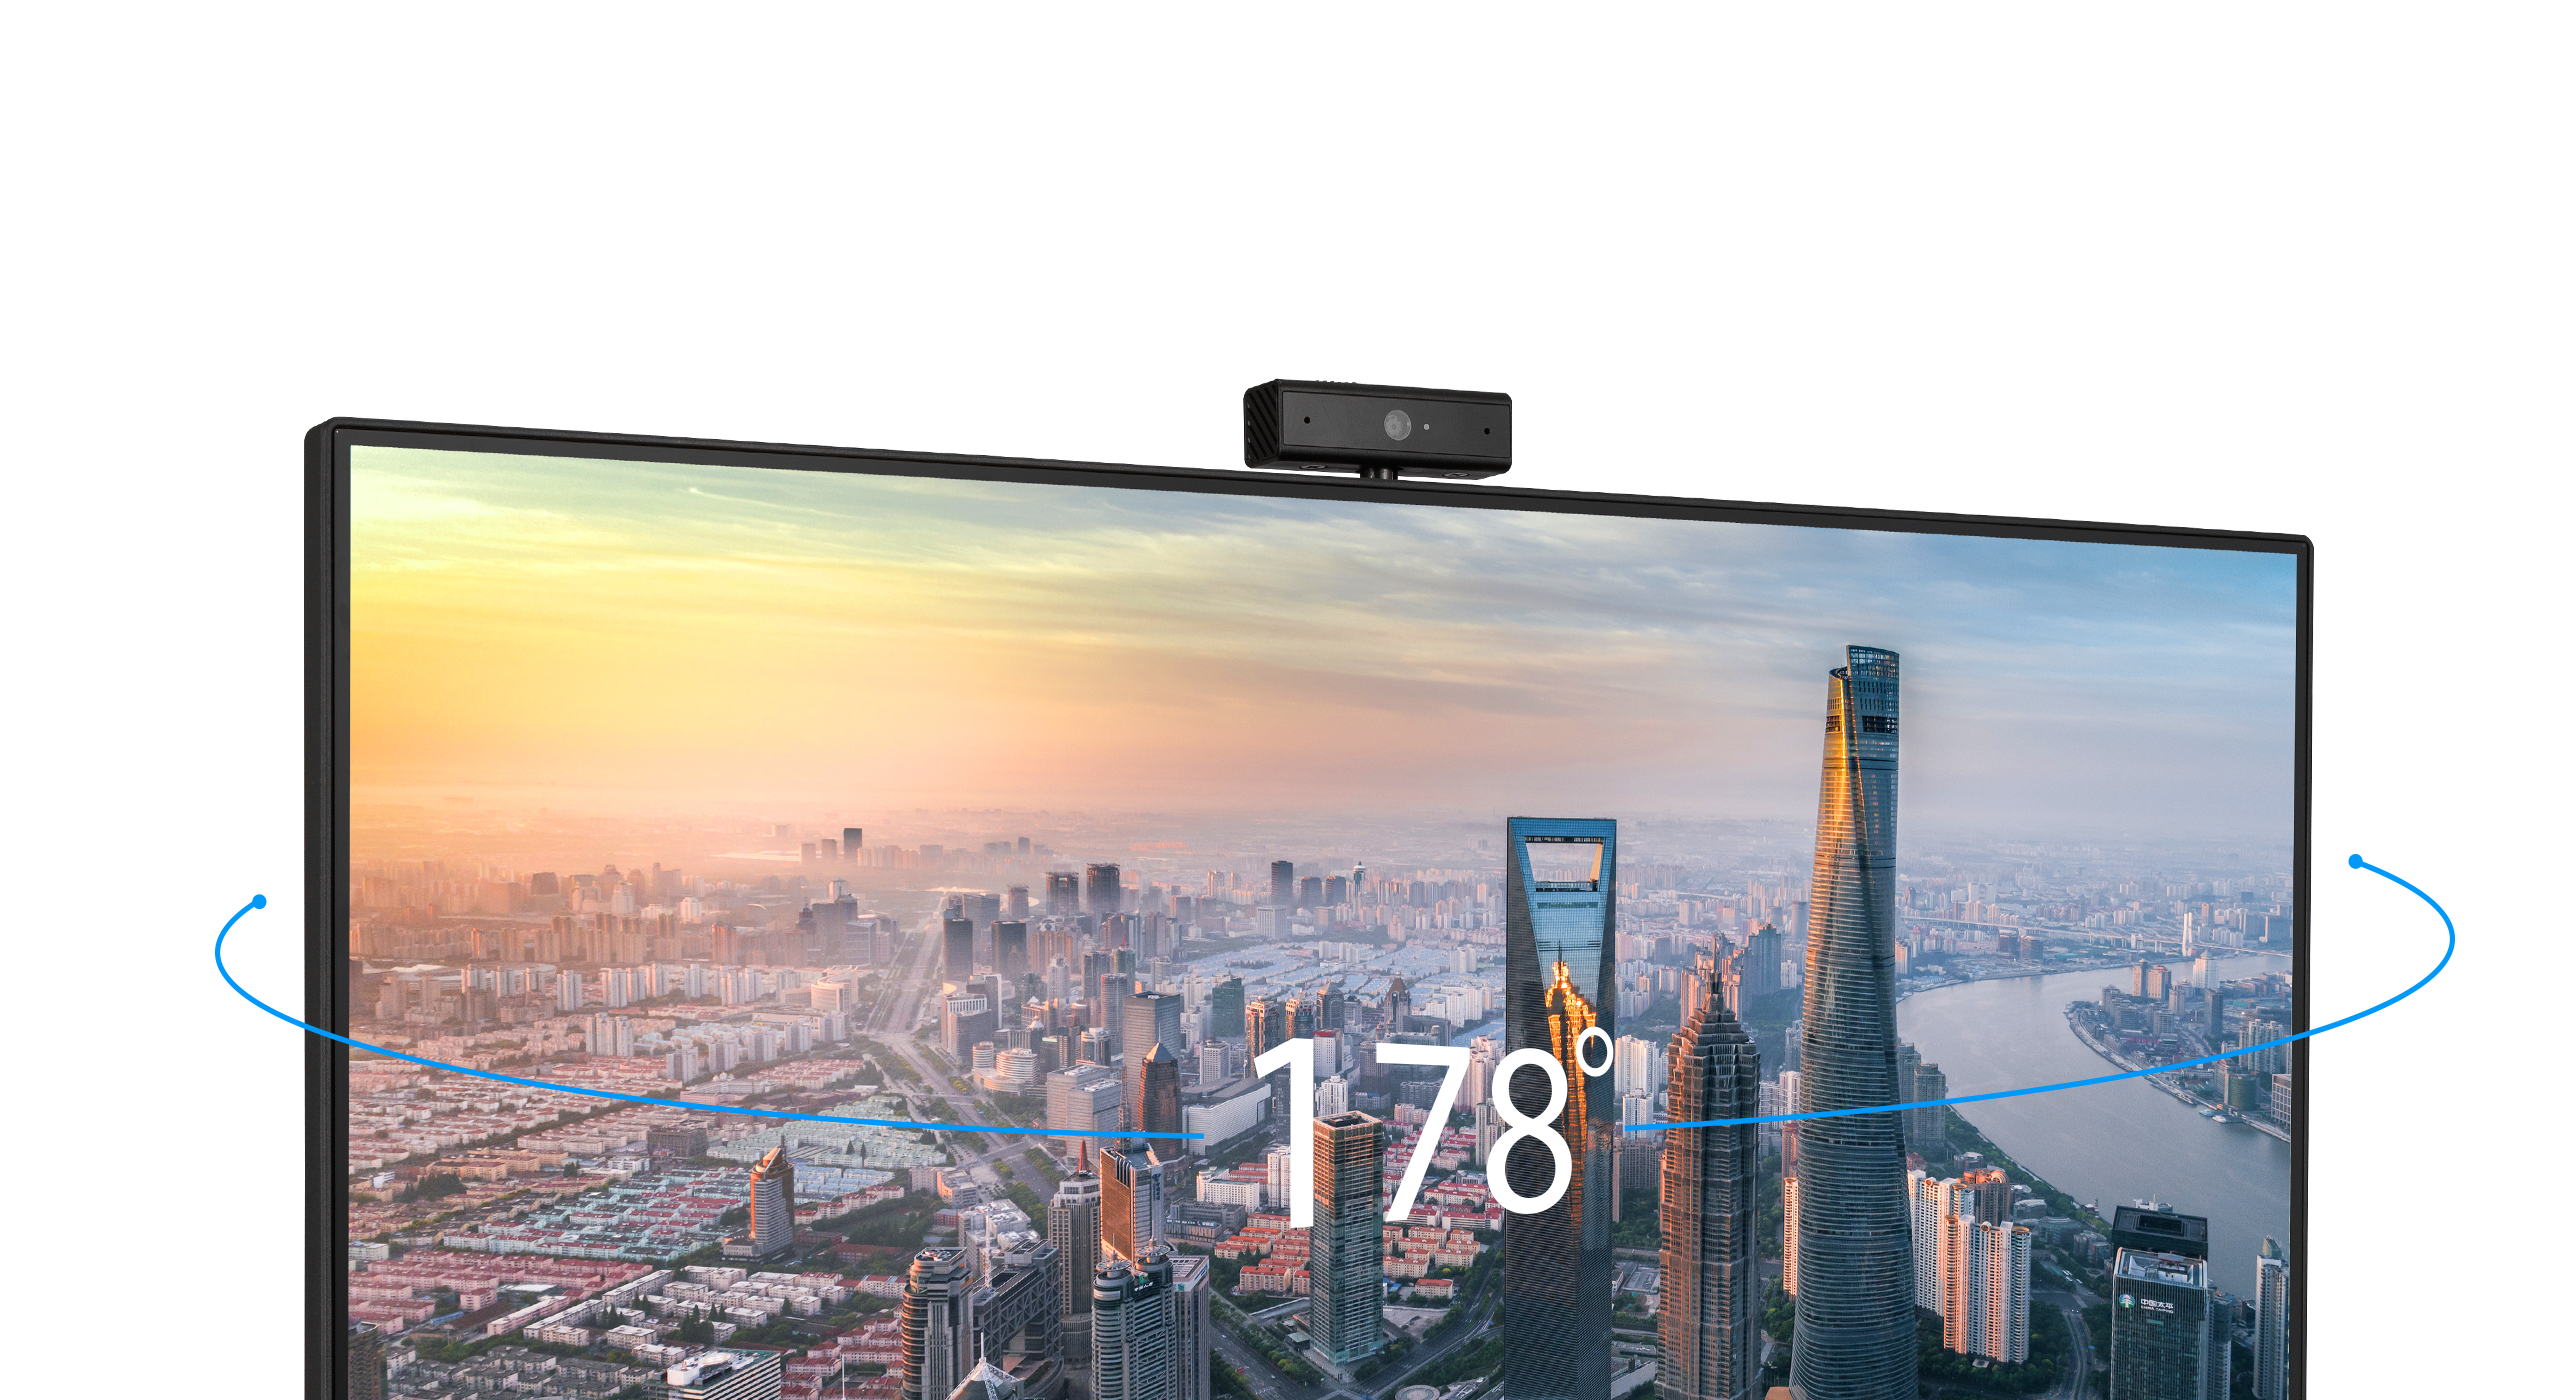 BE24EQK offers Full HD resolution to deliver stunning clarity.